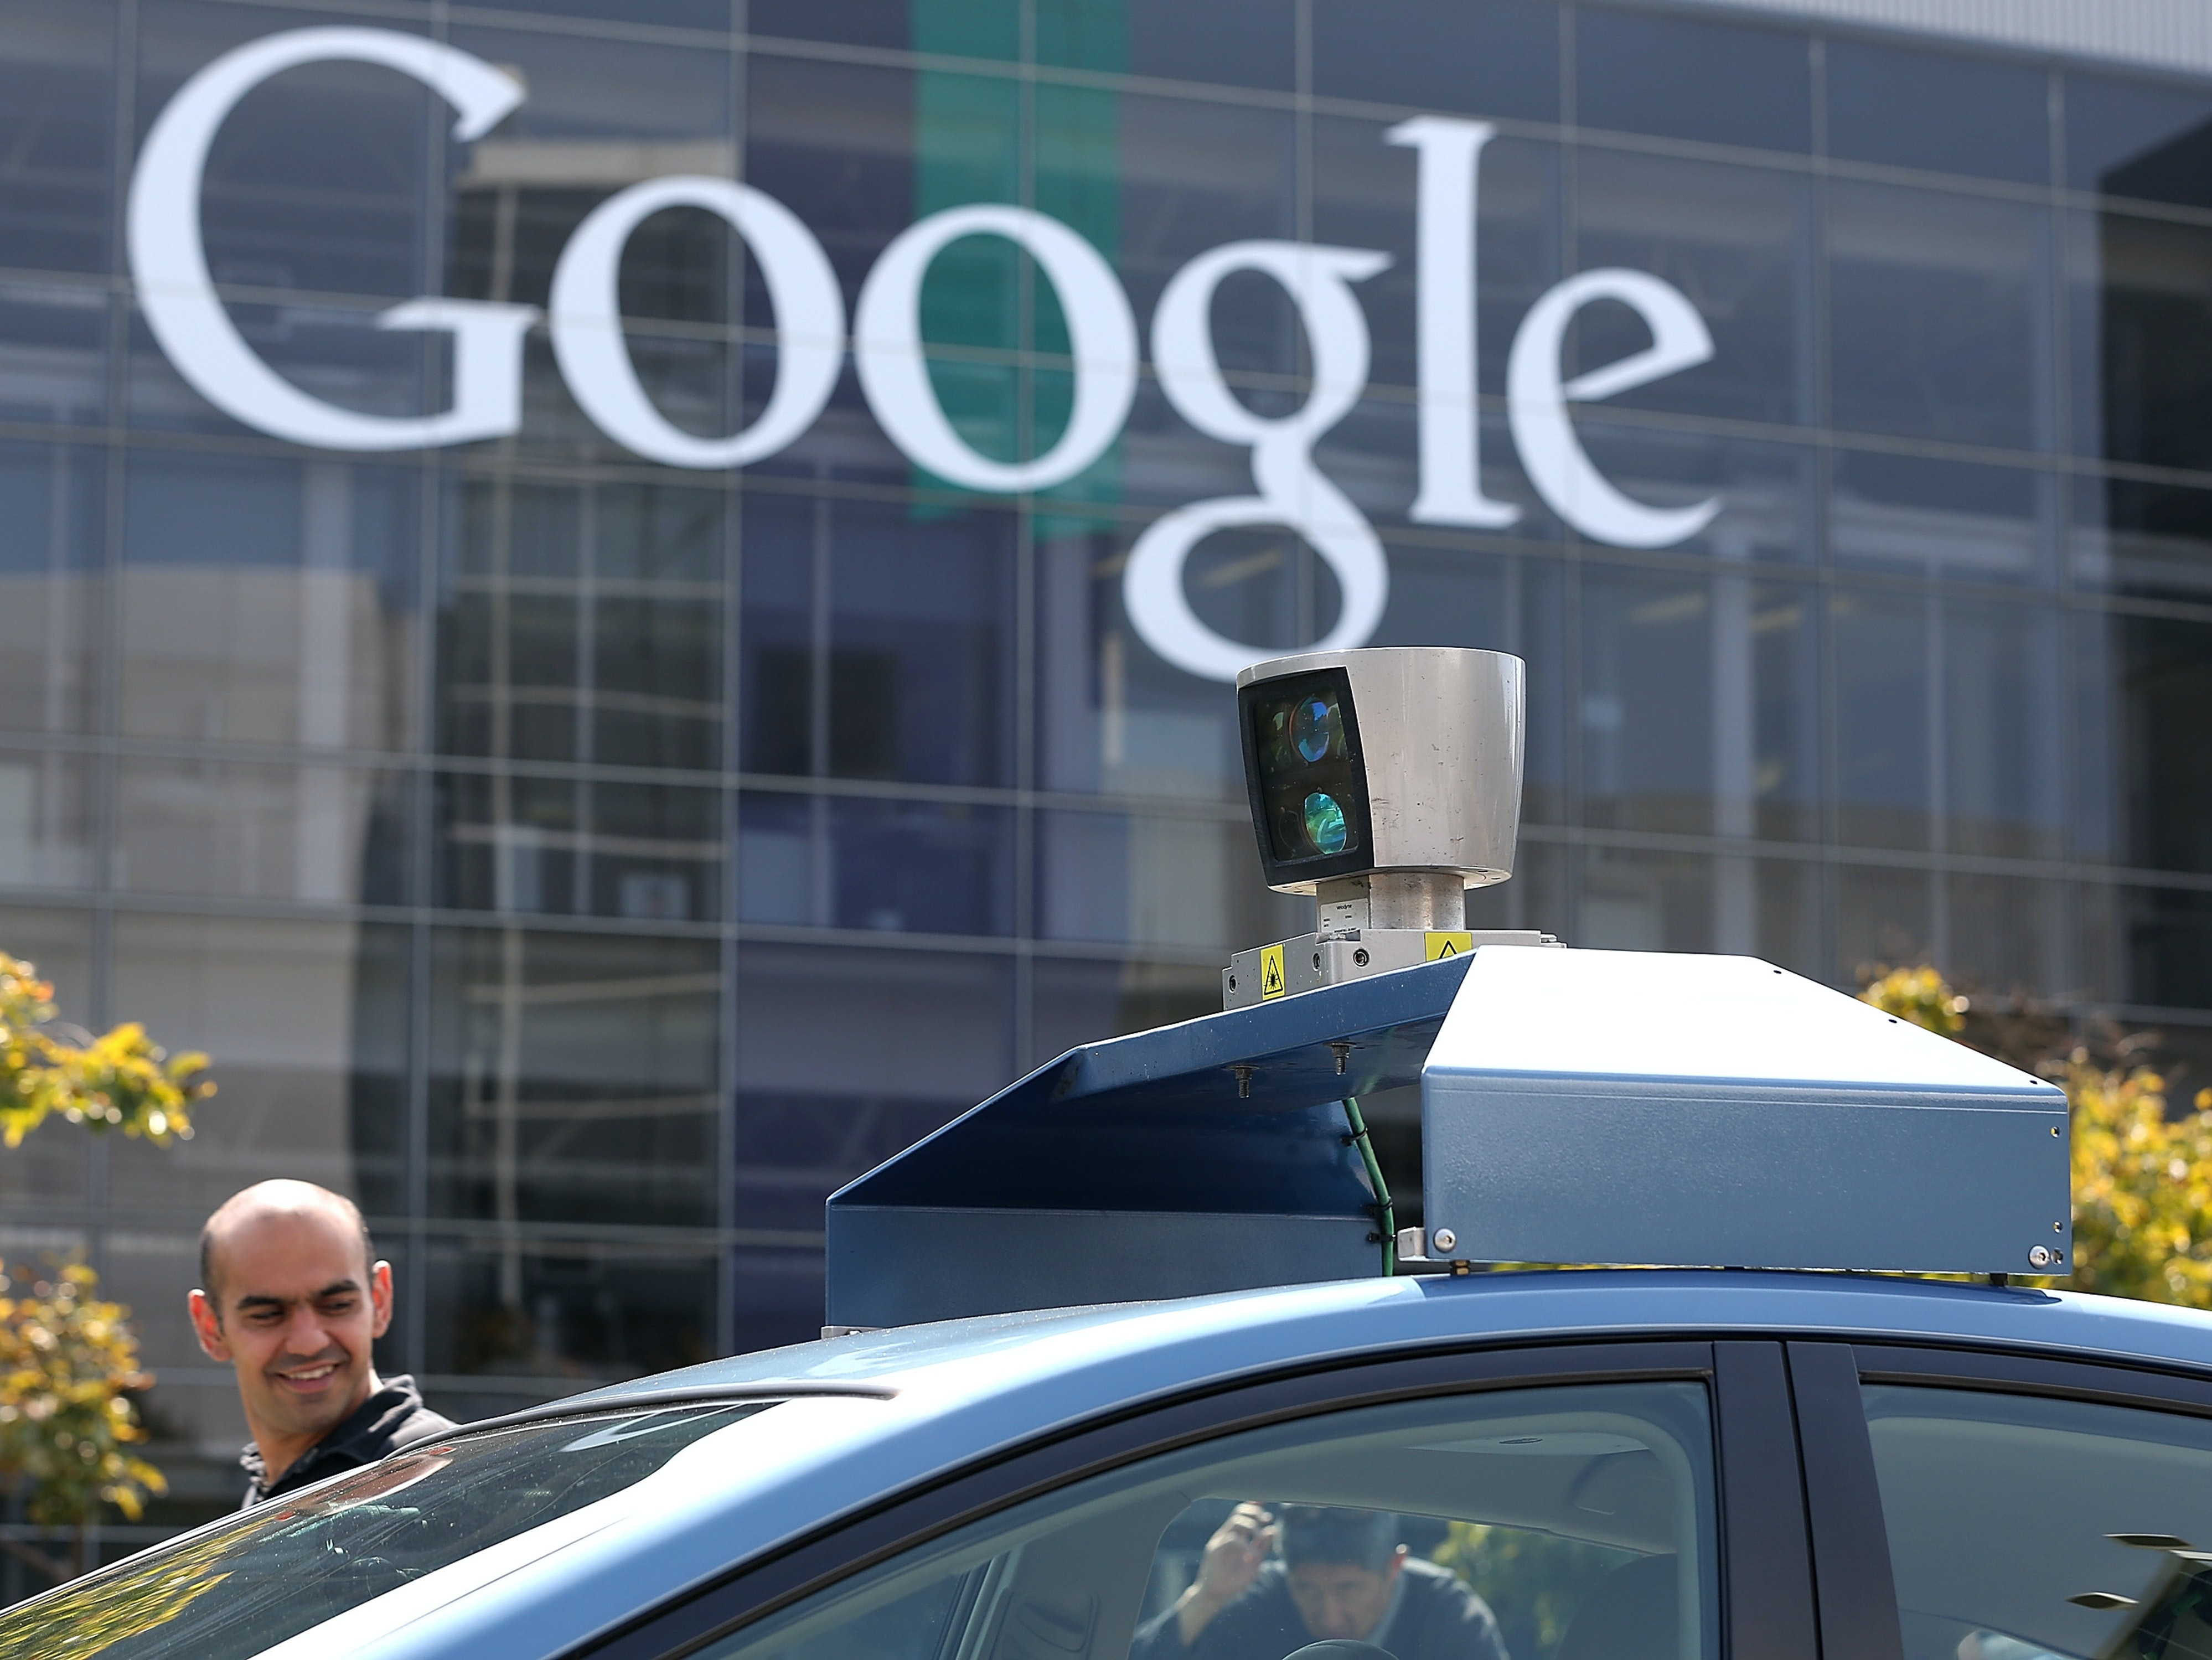 Google, Uber, Ford, and Others Form Self-Driving Coalition to Fight Regulations